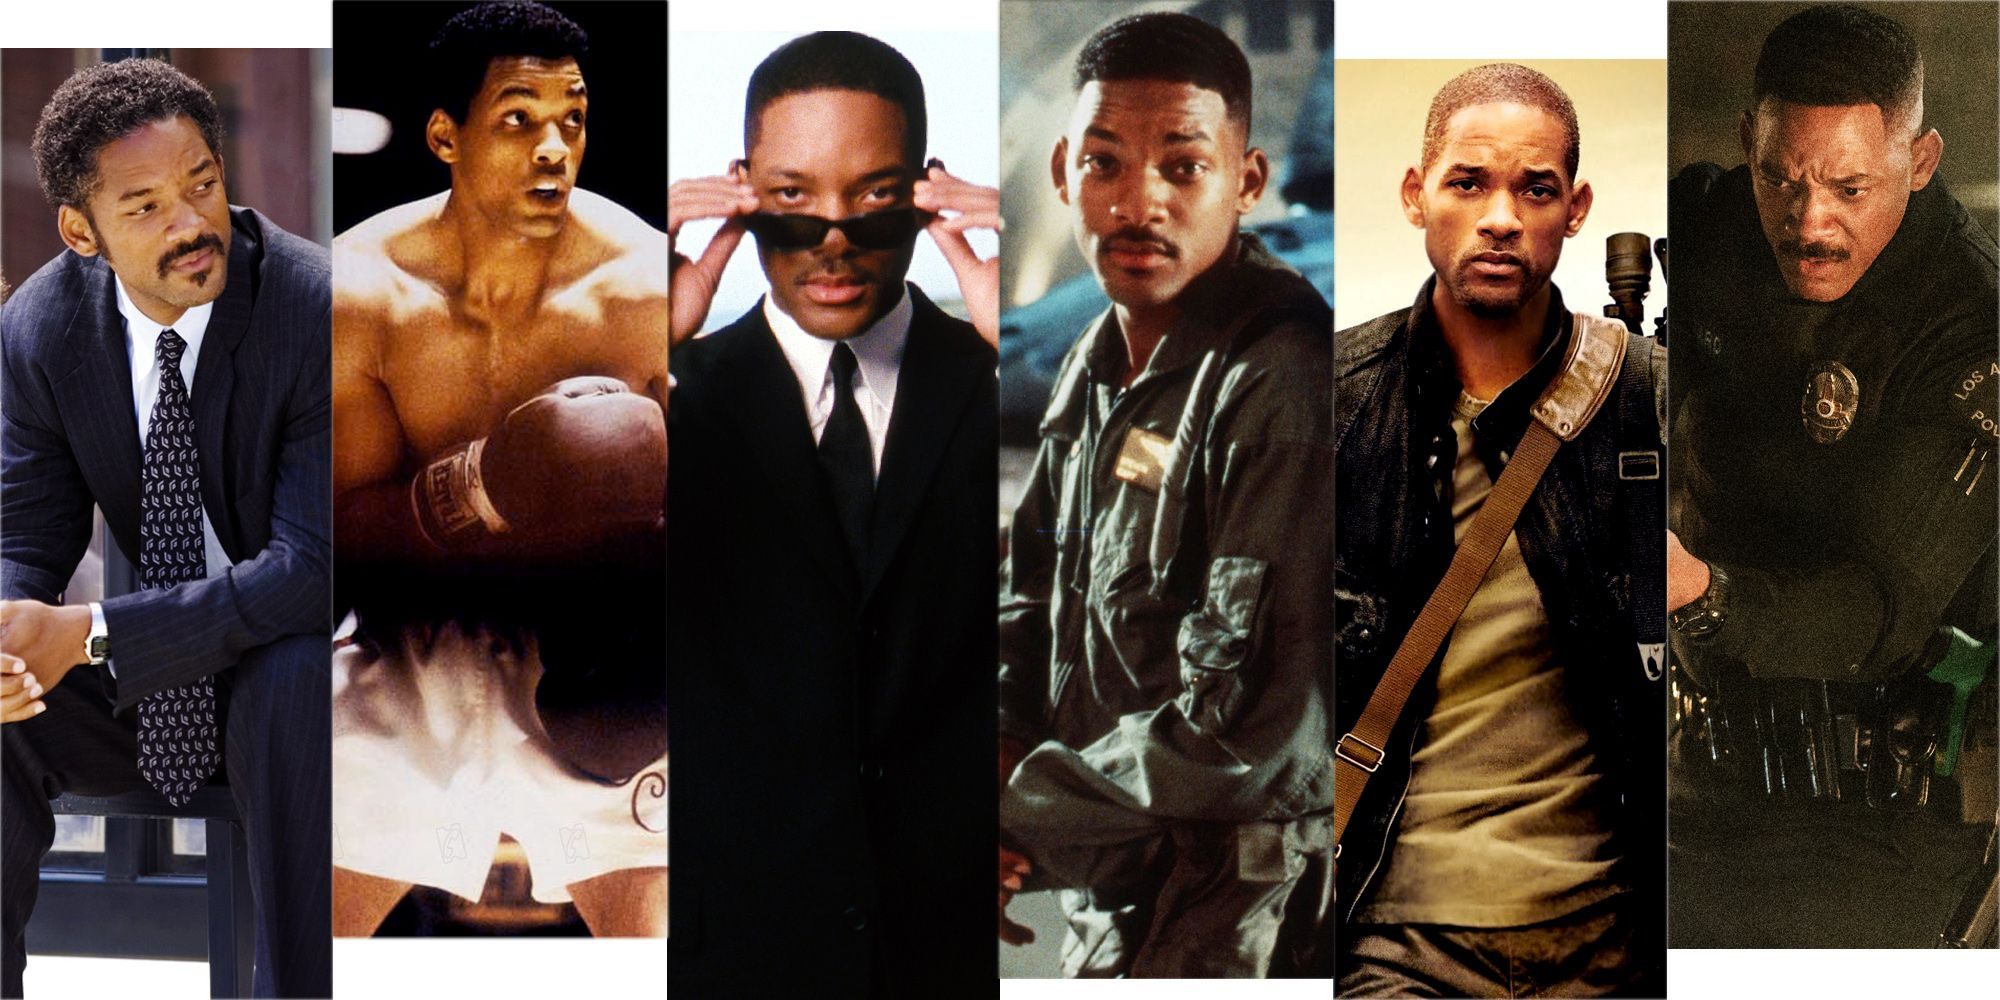 26 Best Will Smith Movies - All Will Smith Movies Ranked